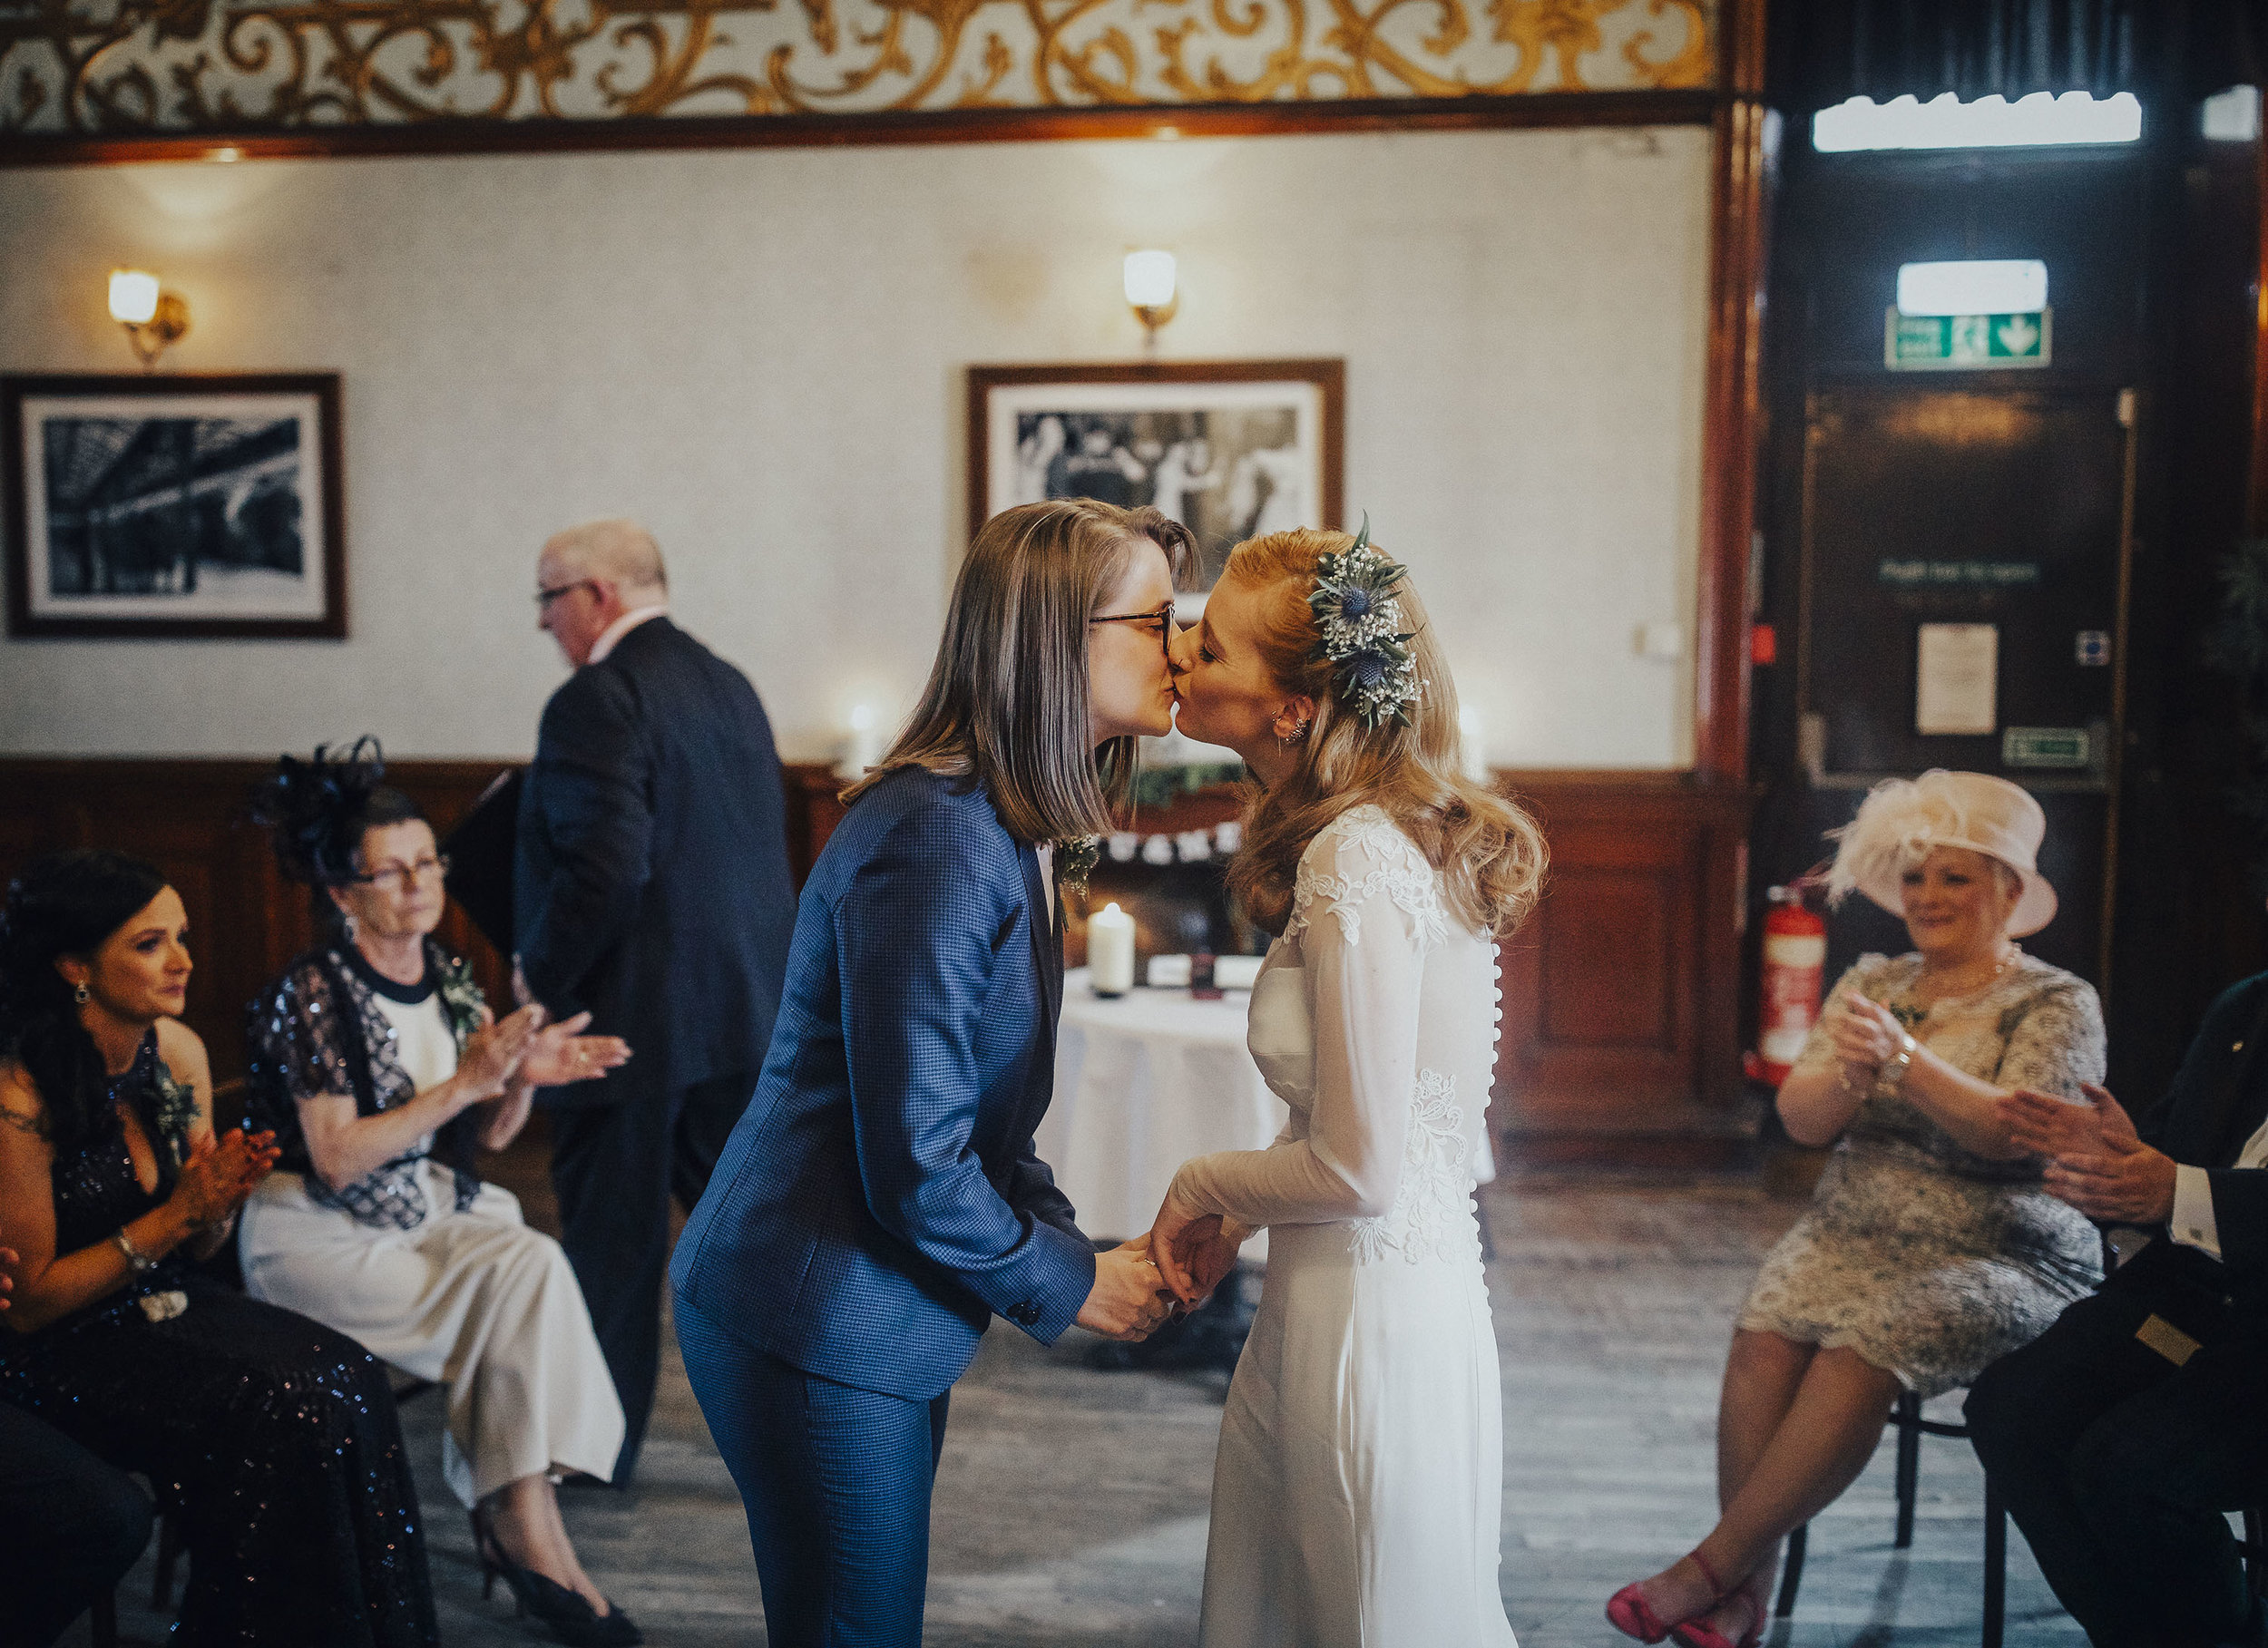 SAME_SEX_WEDDING_PHOTOGRAPHER_SLOANS_GLASGOW_PJ_PHILLIPS_PHOTOGRAPHY_44.jpg